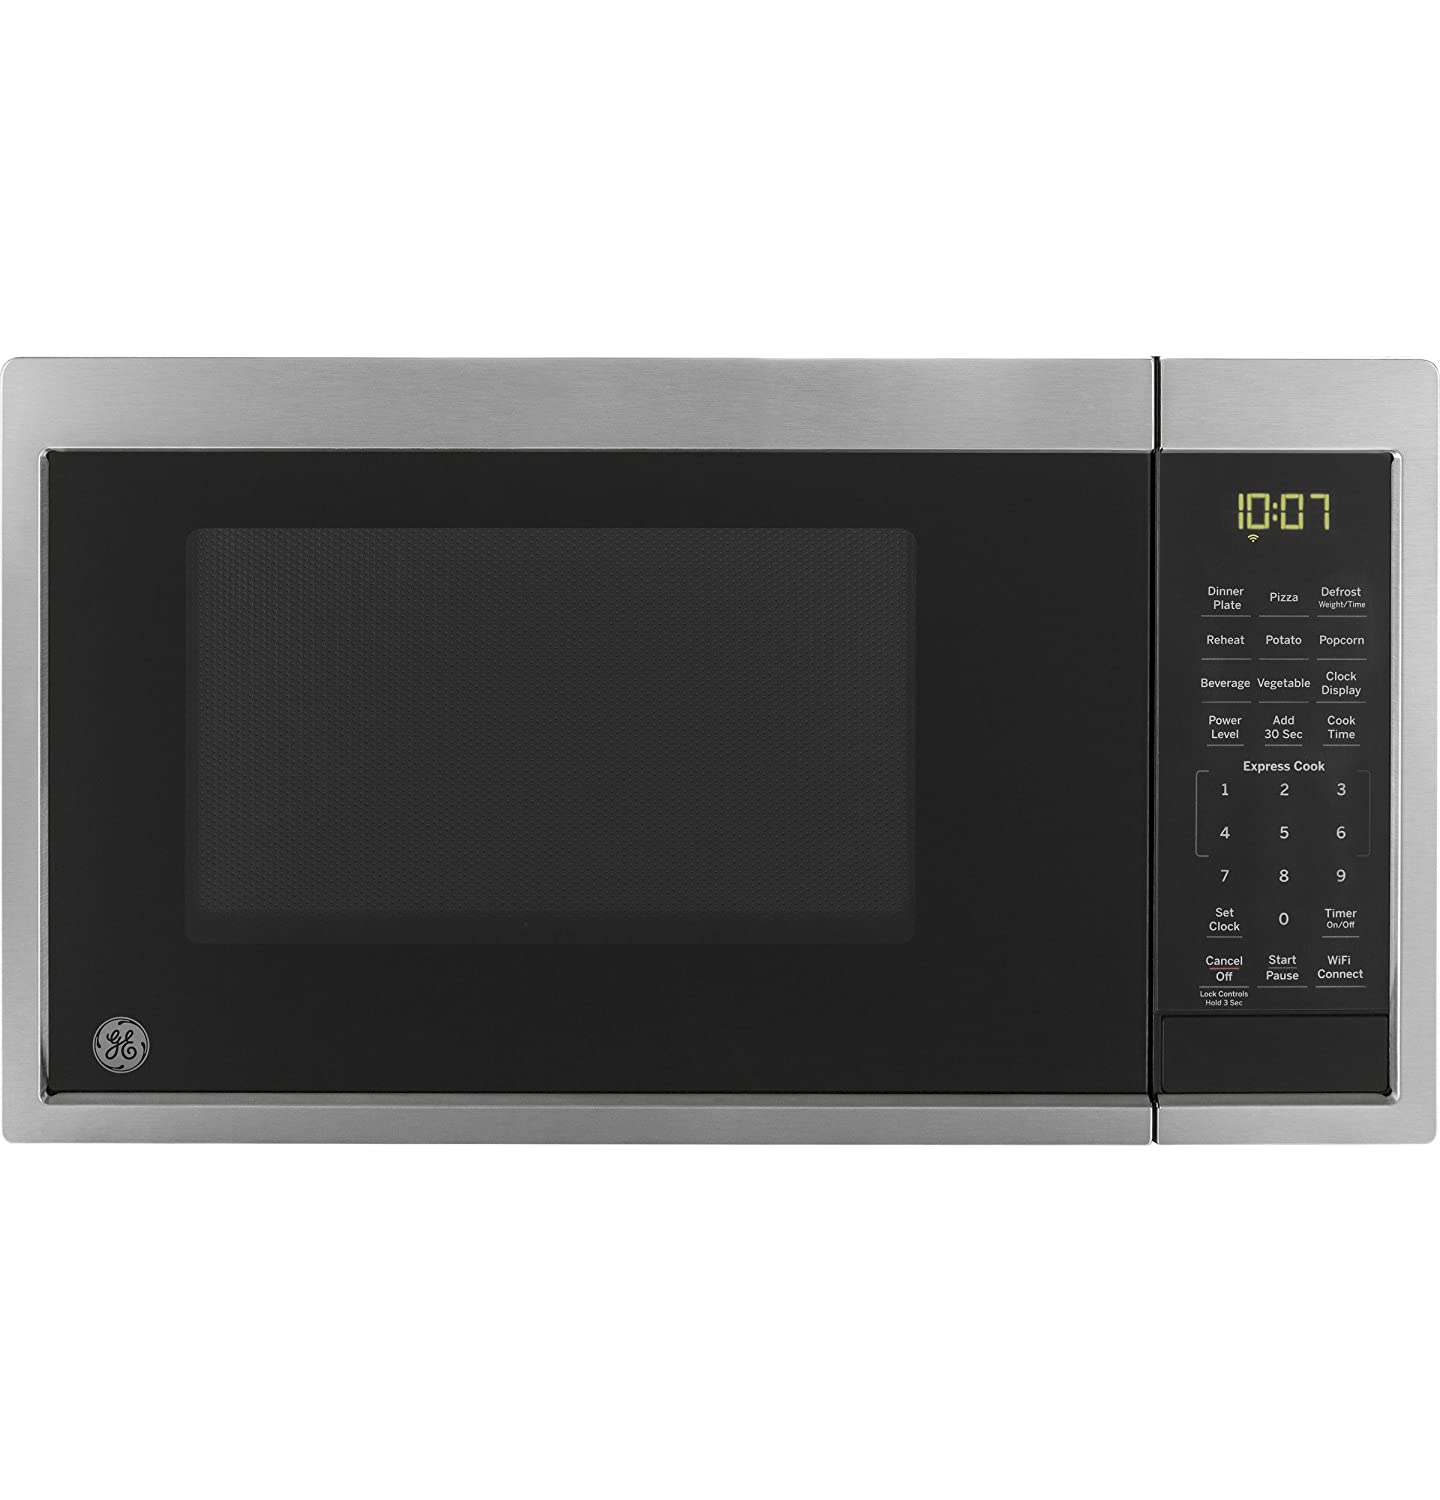 GE JES1097SMSS Smart Countertop Microwave Oven, Works with Alexa, Scan-To-Cook Technology, Smart Sensor, Easy Clean Interior, .9 Cu.ft/900W, Stainless Steel